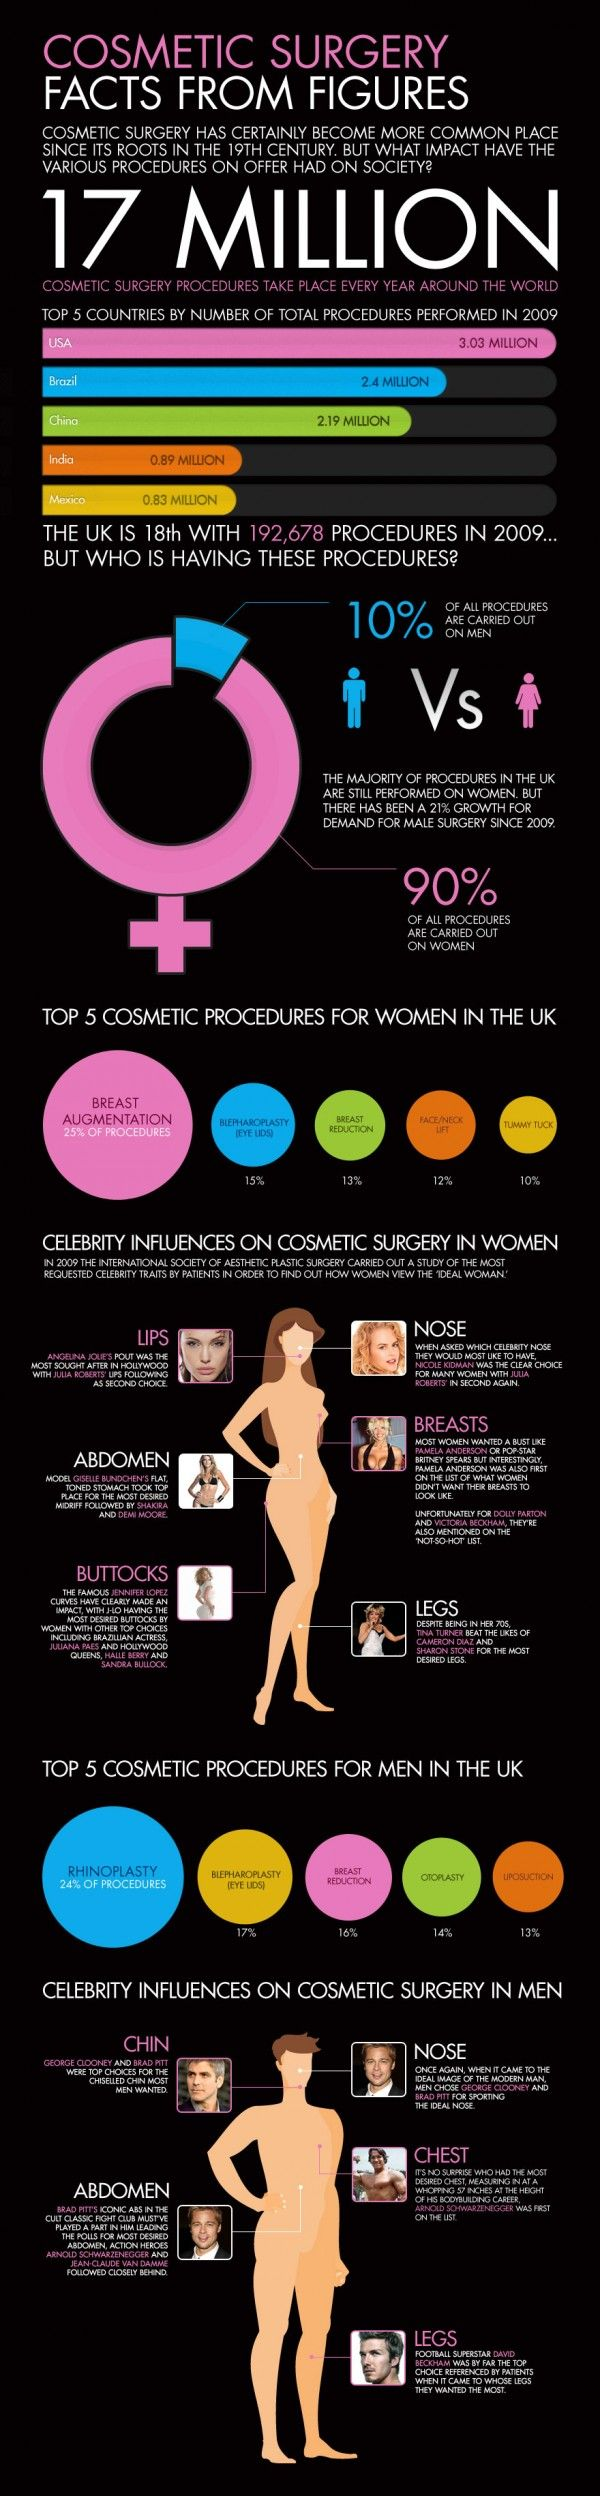 You may remember the plastic surgery infographic we ran a few months ago that detailed the most popular types of plastic surgery in the United Kingdom. Well, today, we have a graphic that examines surgery from a rather different perspective–and a fresh one. Just how much do celebrities influence people's decisions to go under the knife, and which celebrities are people influenced the most by?